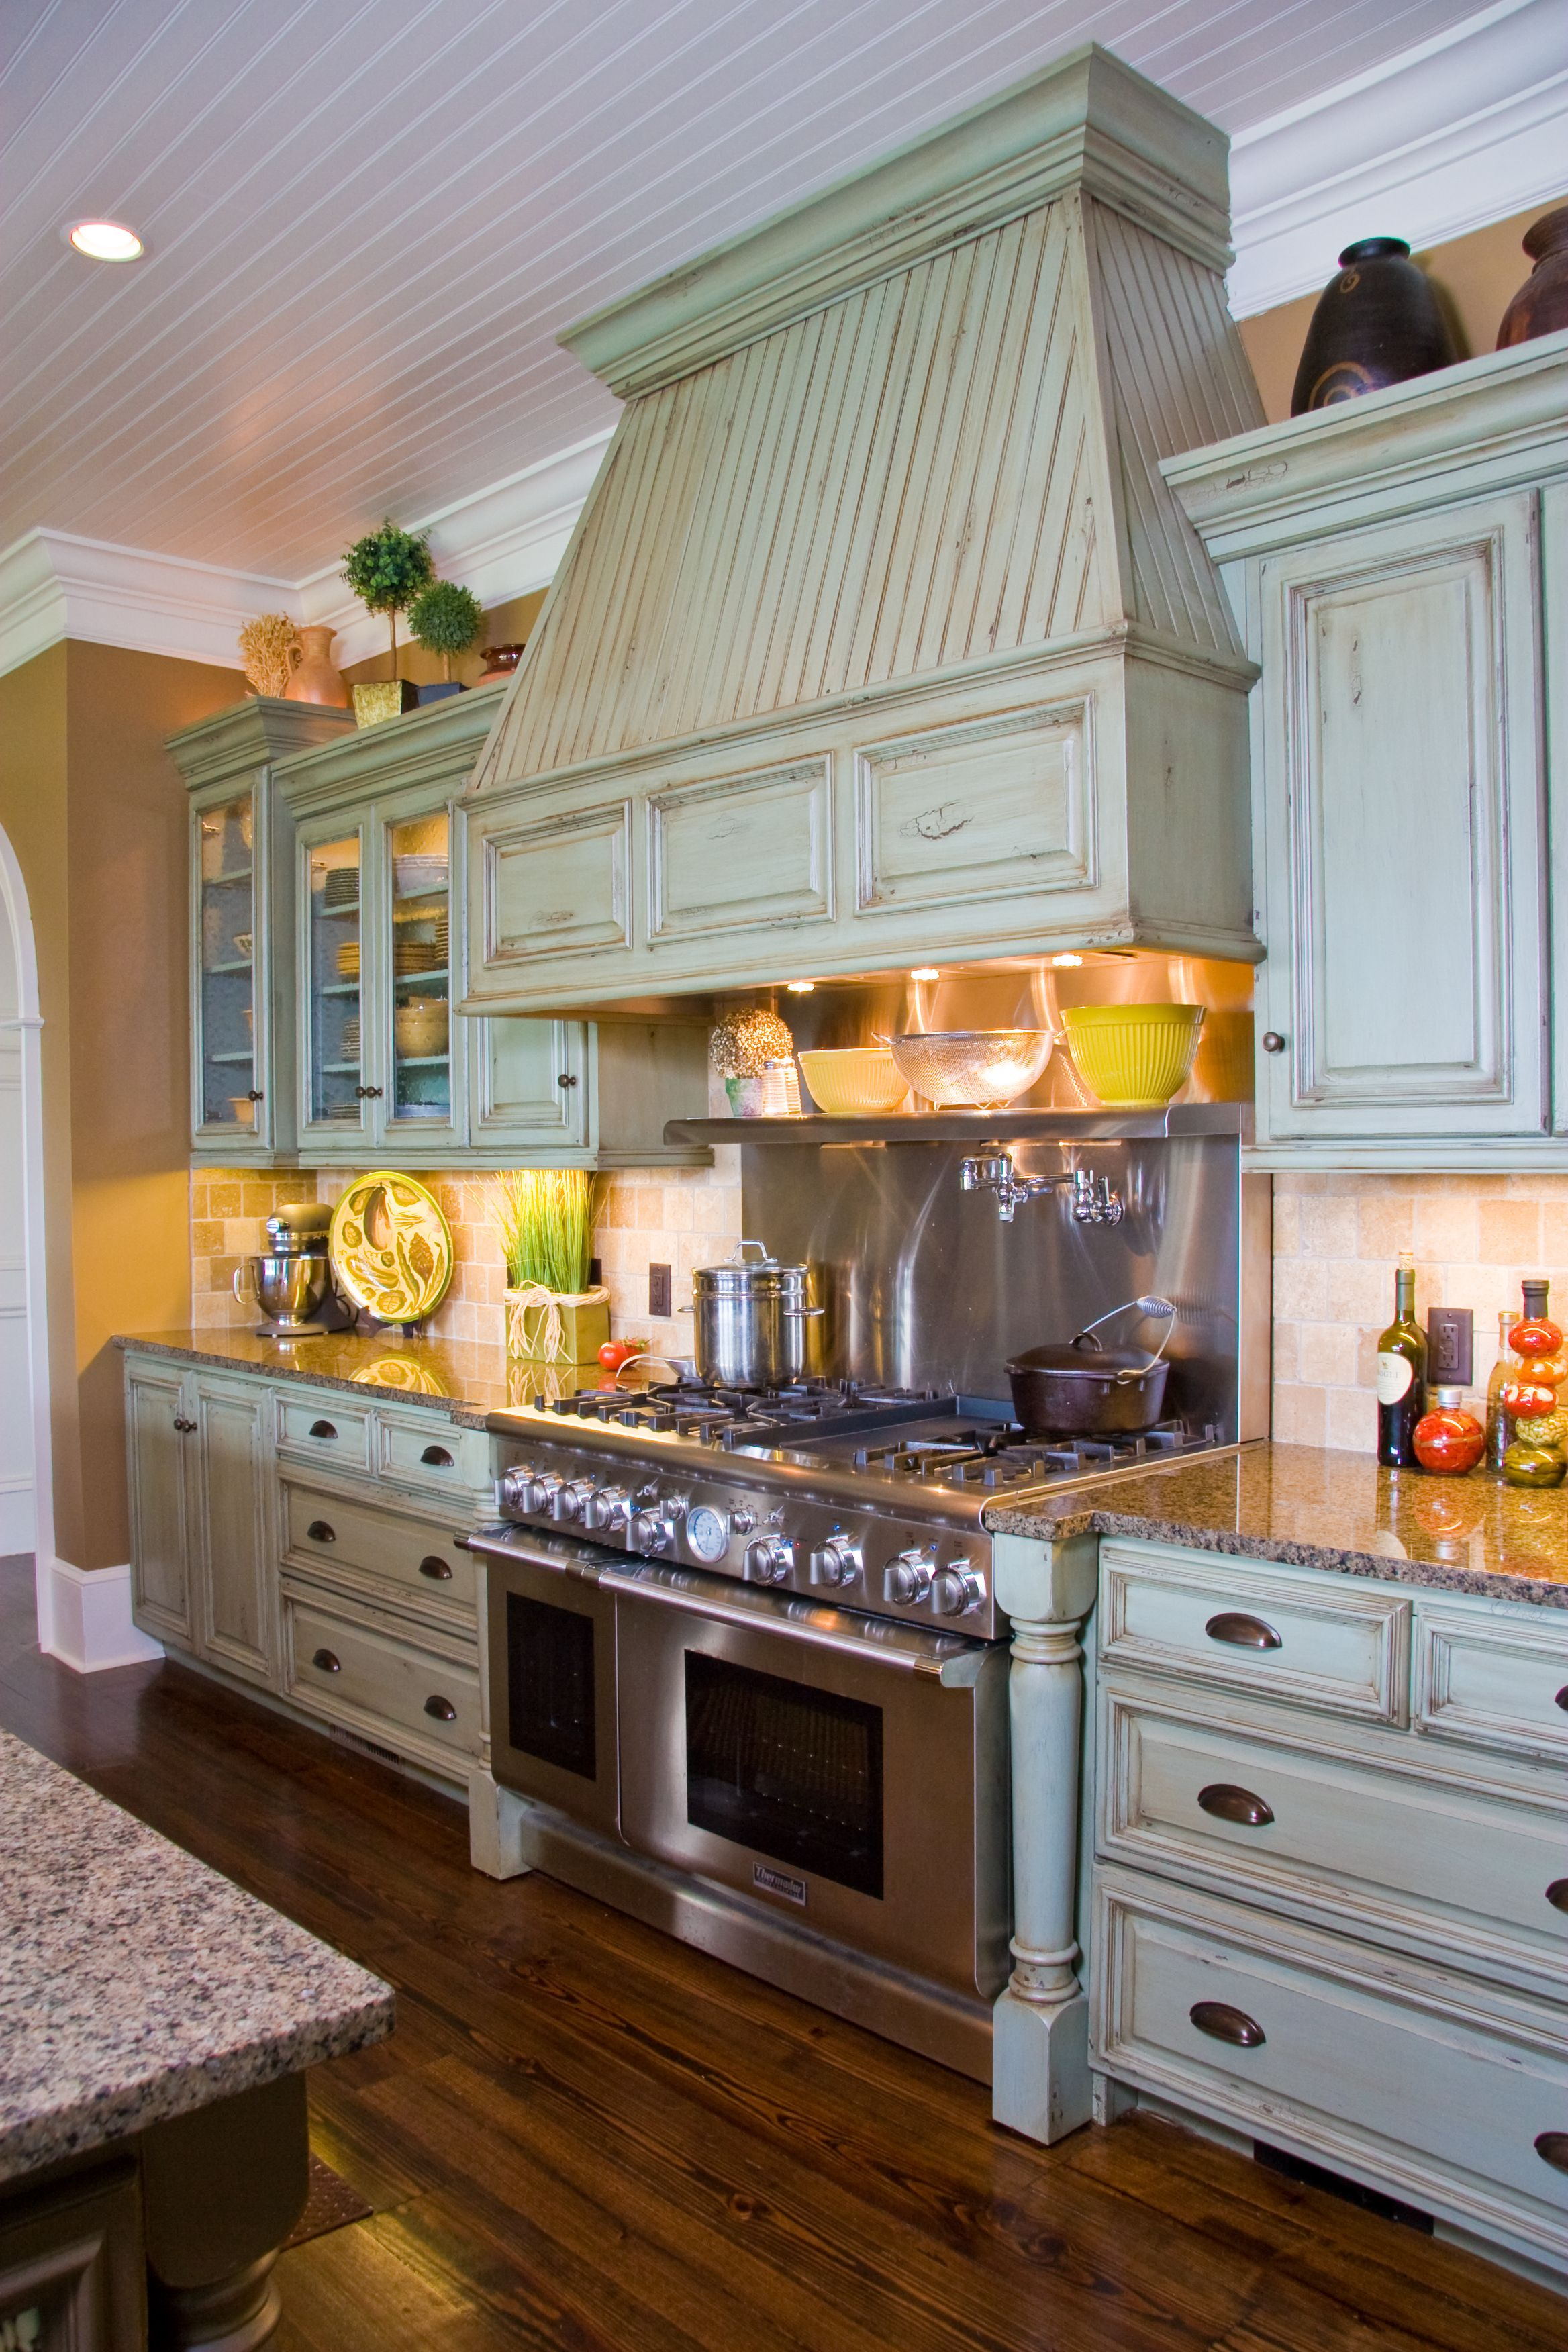 Renovations Hand Made Custom Cabinets At Affordable Prices Built With Amish Pride Kitchen And Bath Remodeling Kitchen Cabinets In Bathroom Kitchen